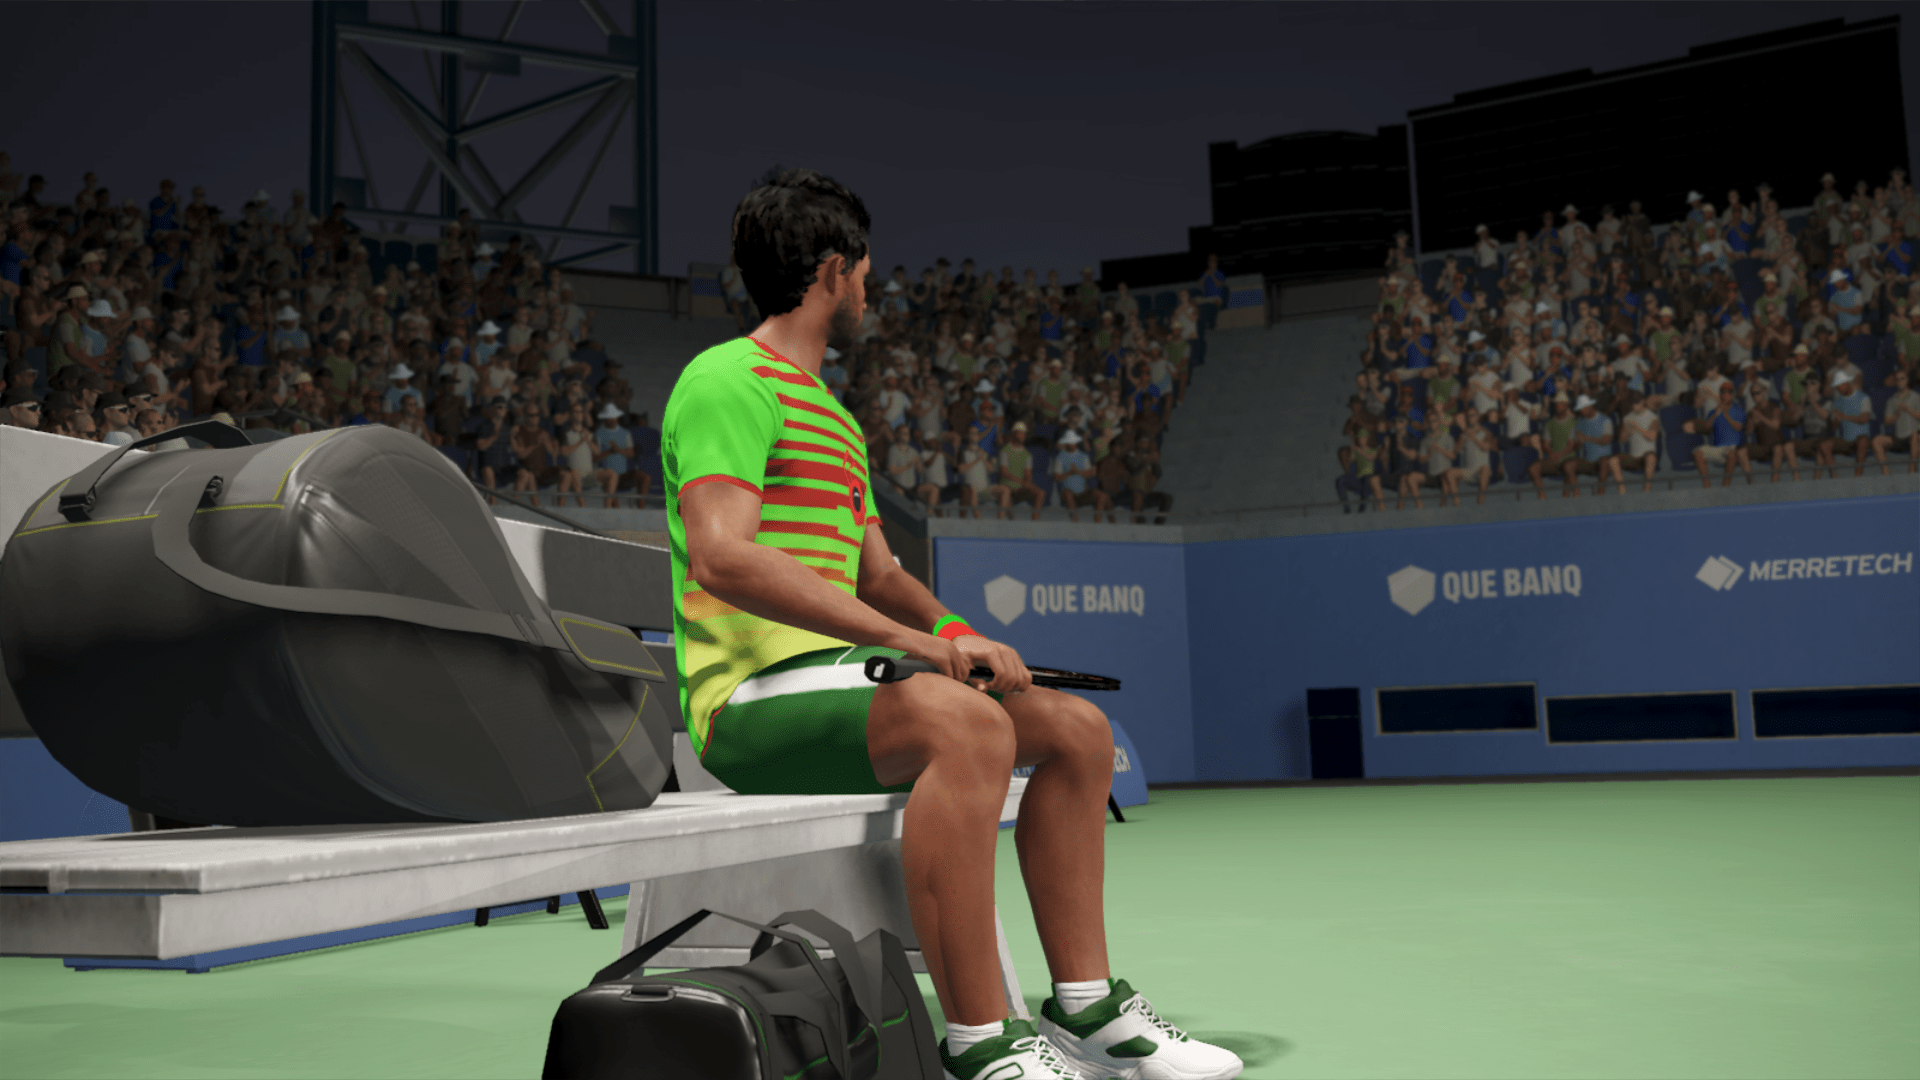 Review - AO International Tennis (Xbox One)